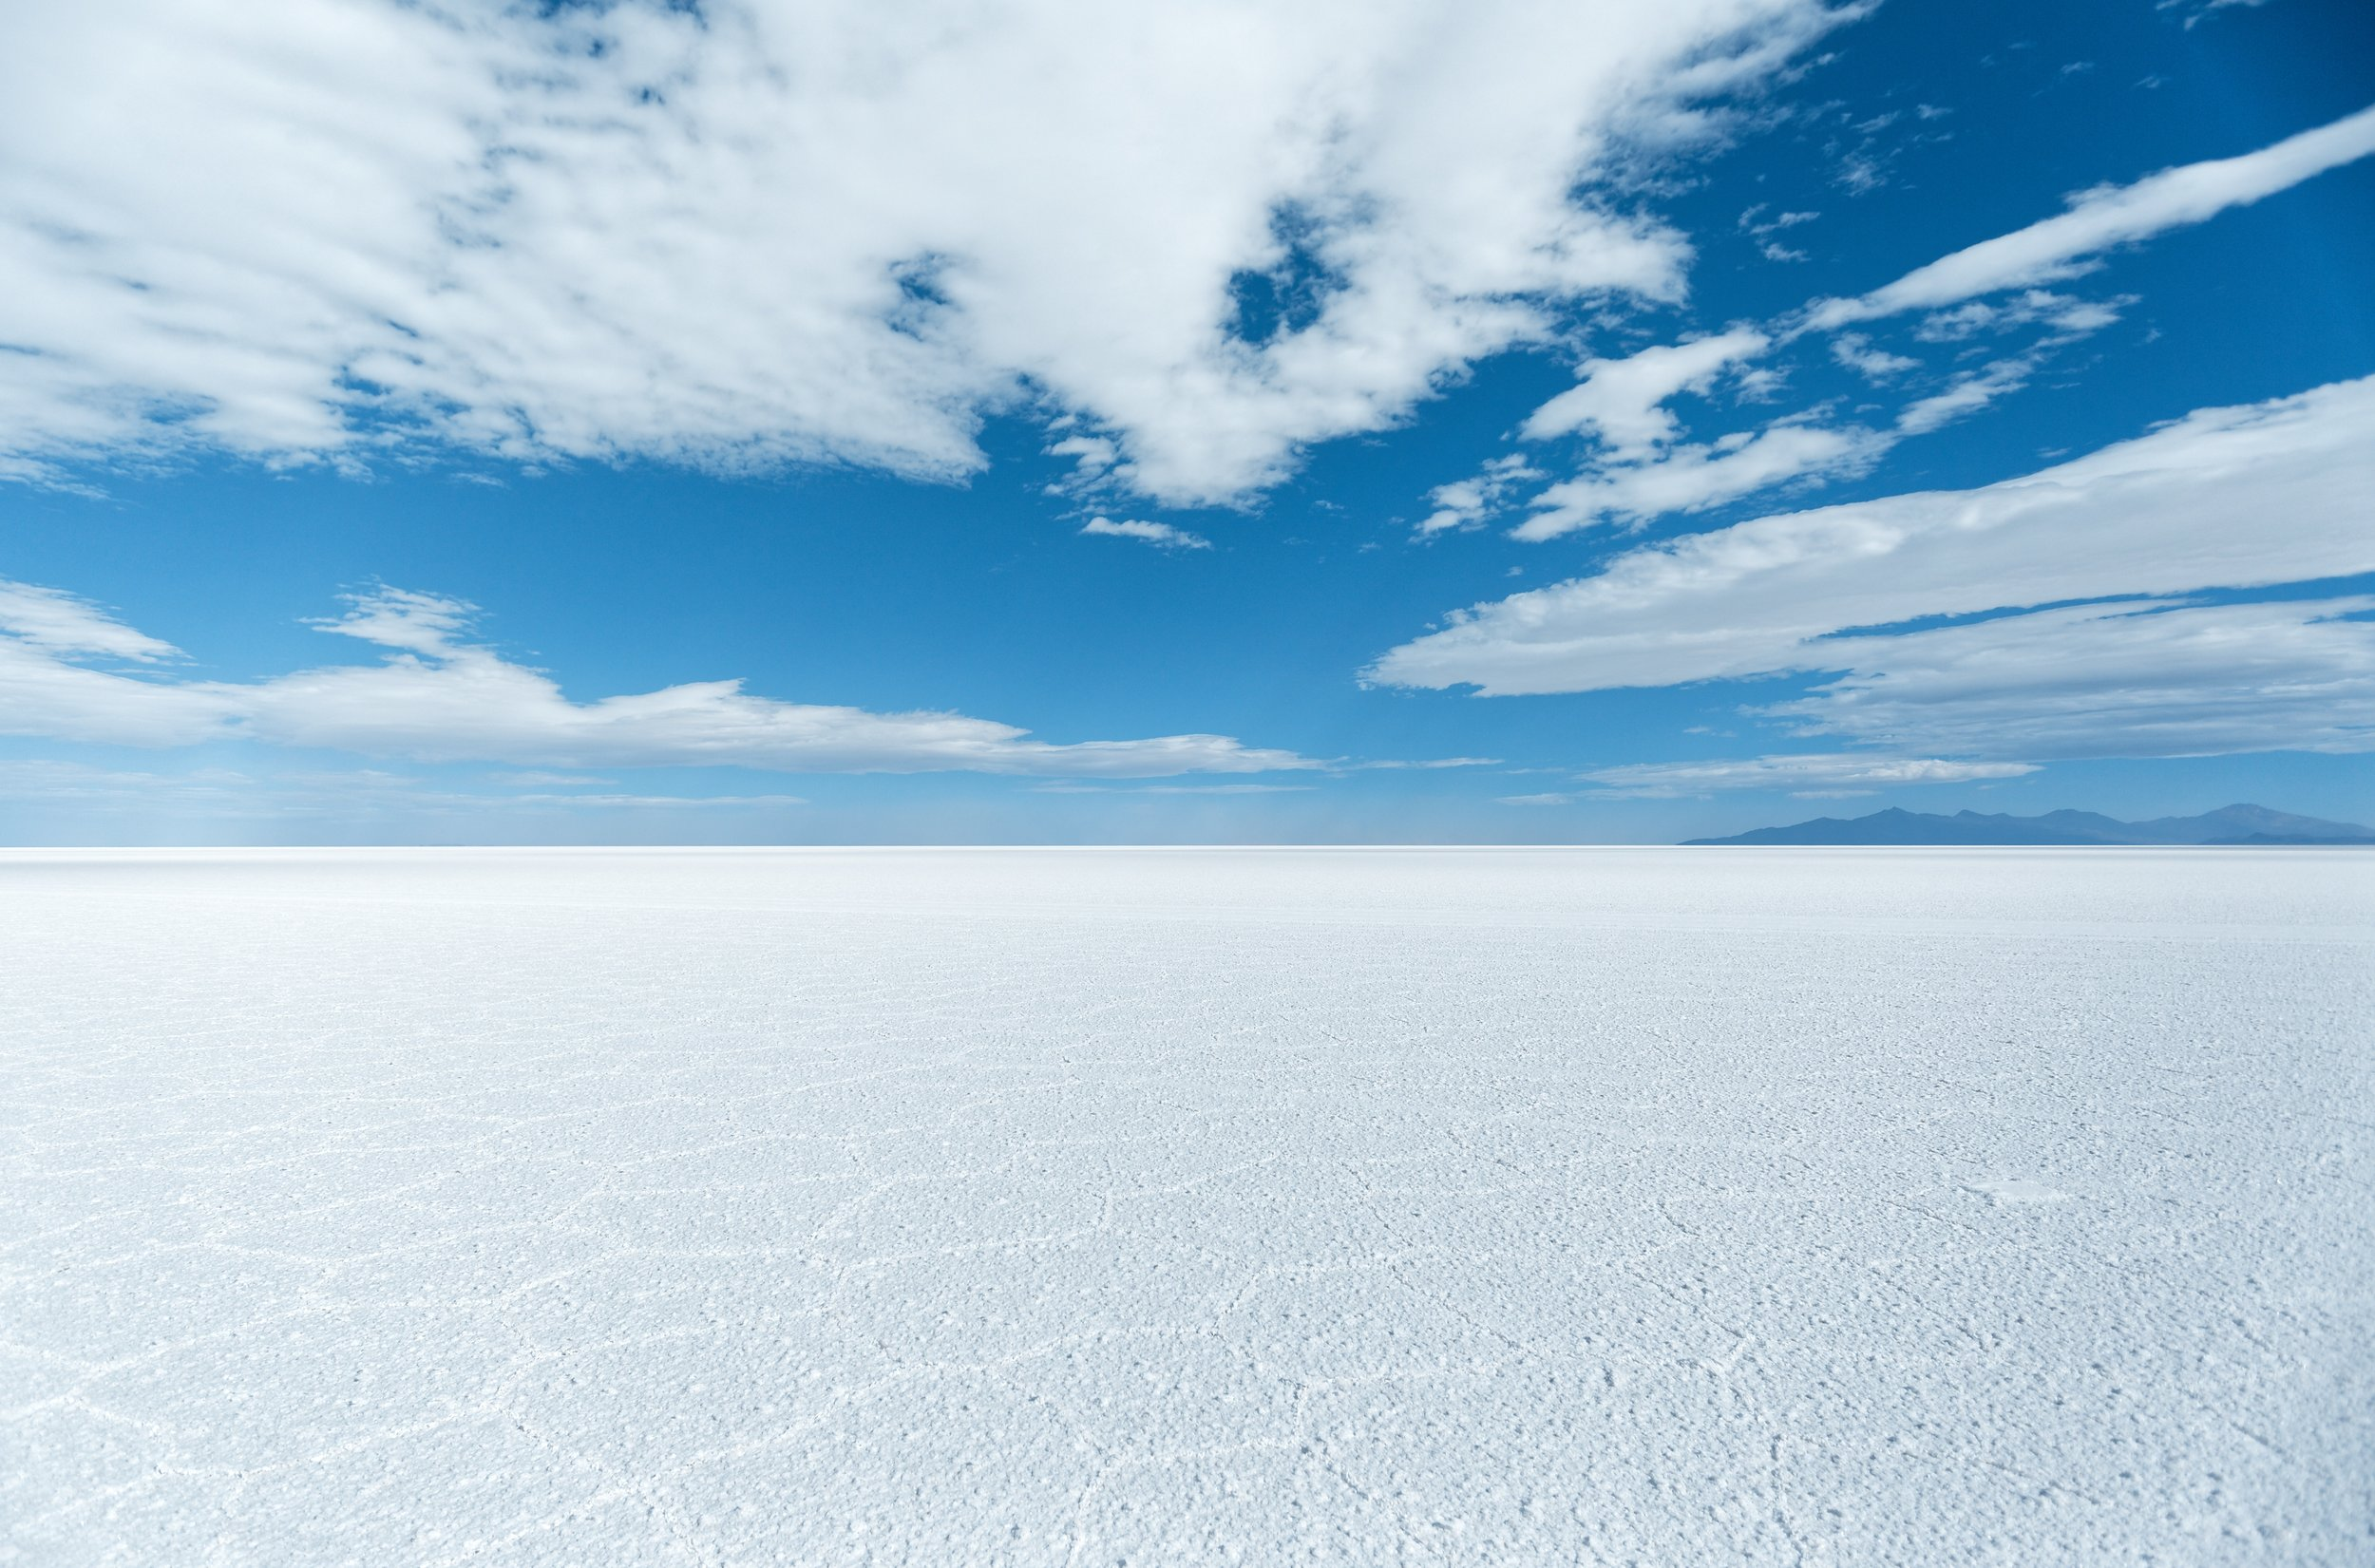 The Salt Flats in Bolivia, from Unsplash, by Diego.